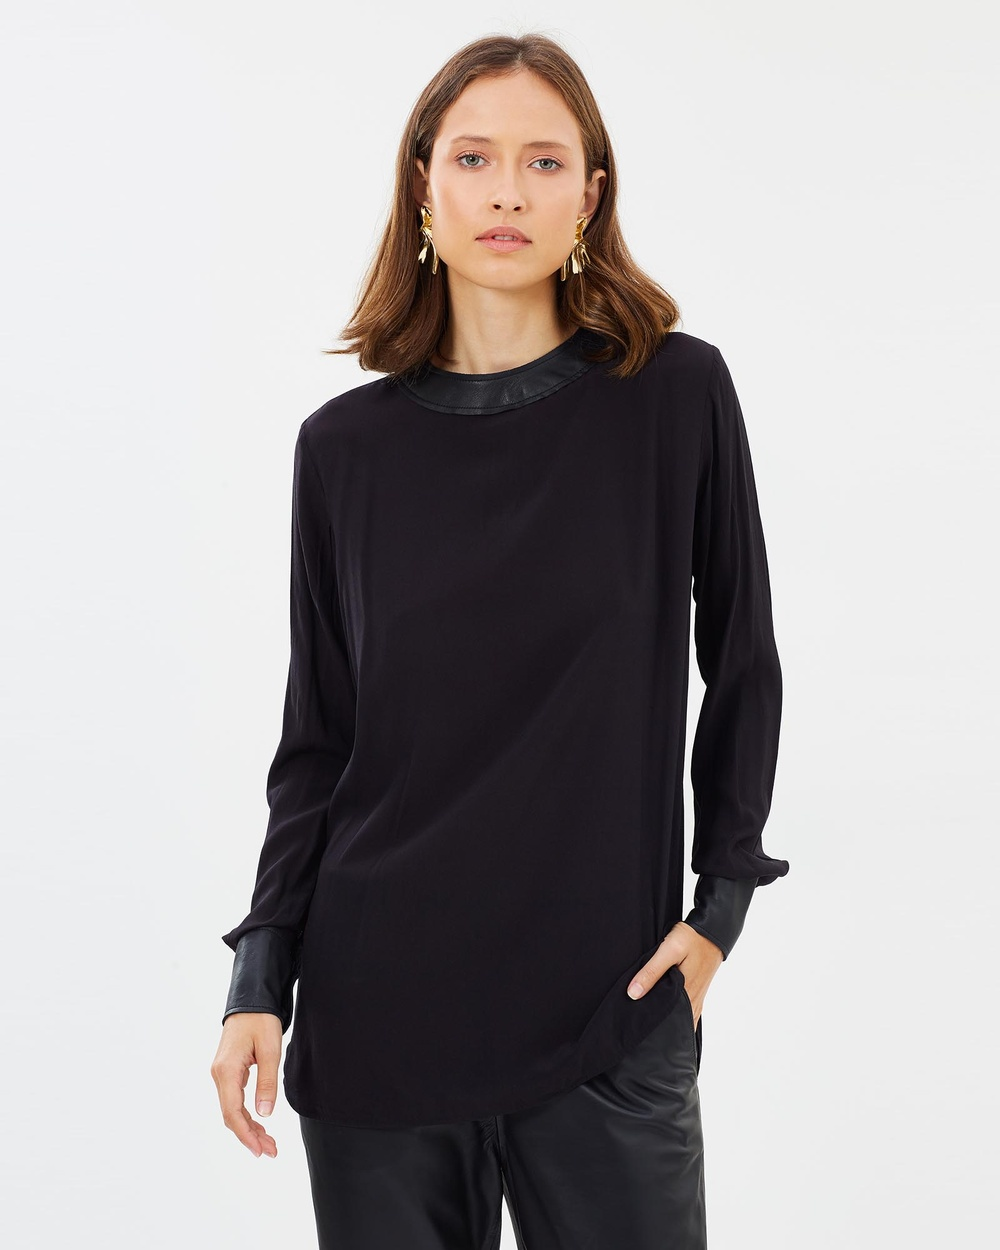 RAW by RAW Skylar Top Tops Jet Black Skylar Top